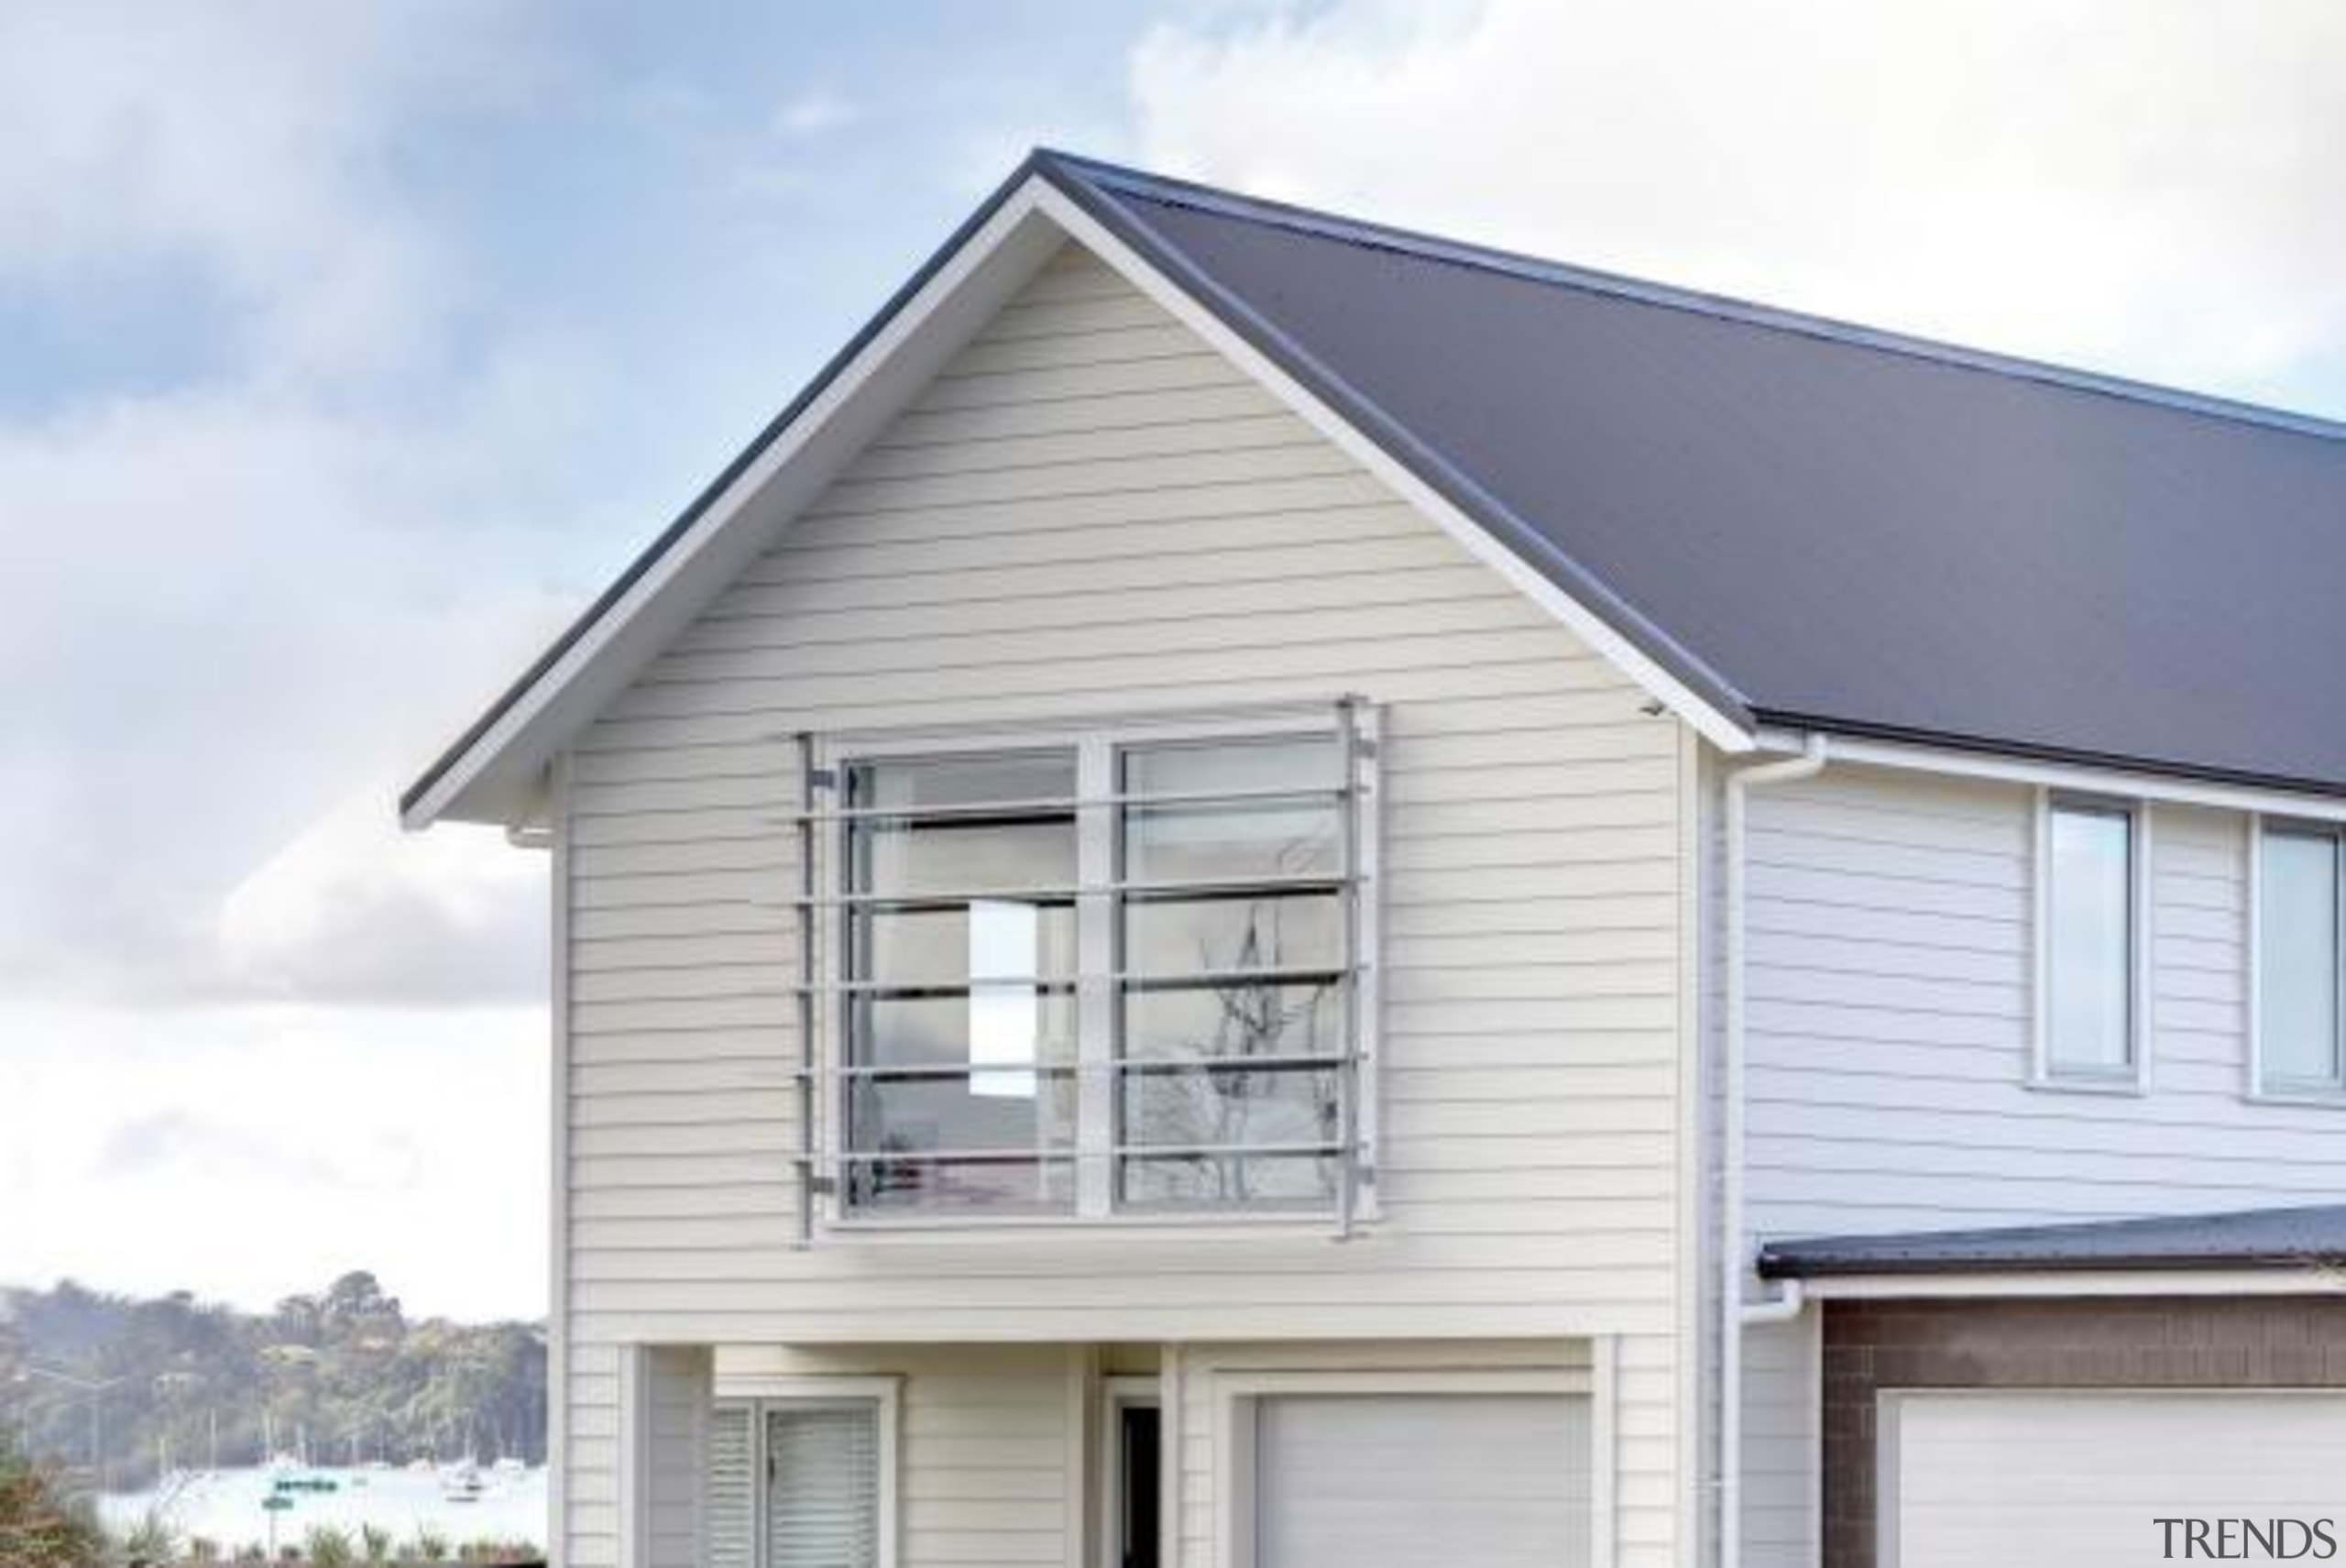 Axent Fascia - Axent Fascia - building | building, facade, home, house, property, real estate, roof, siding, window, white